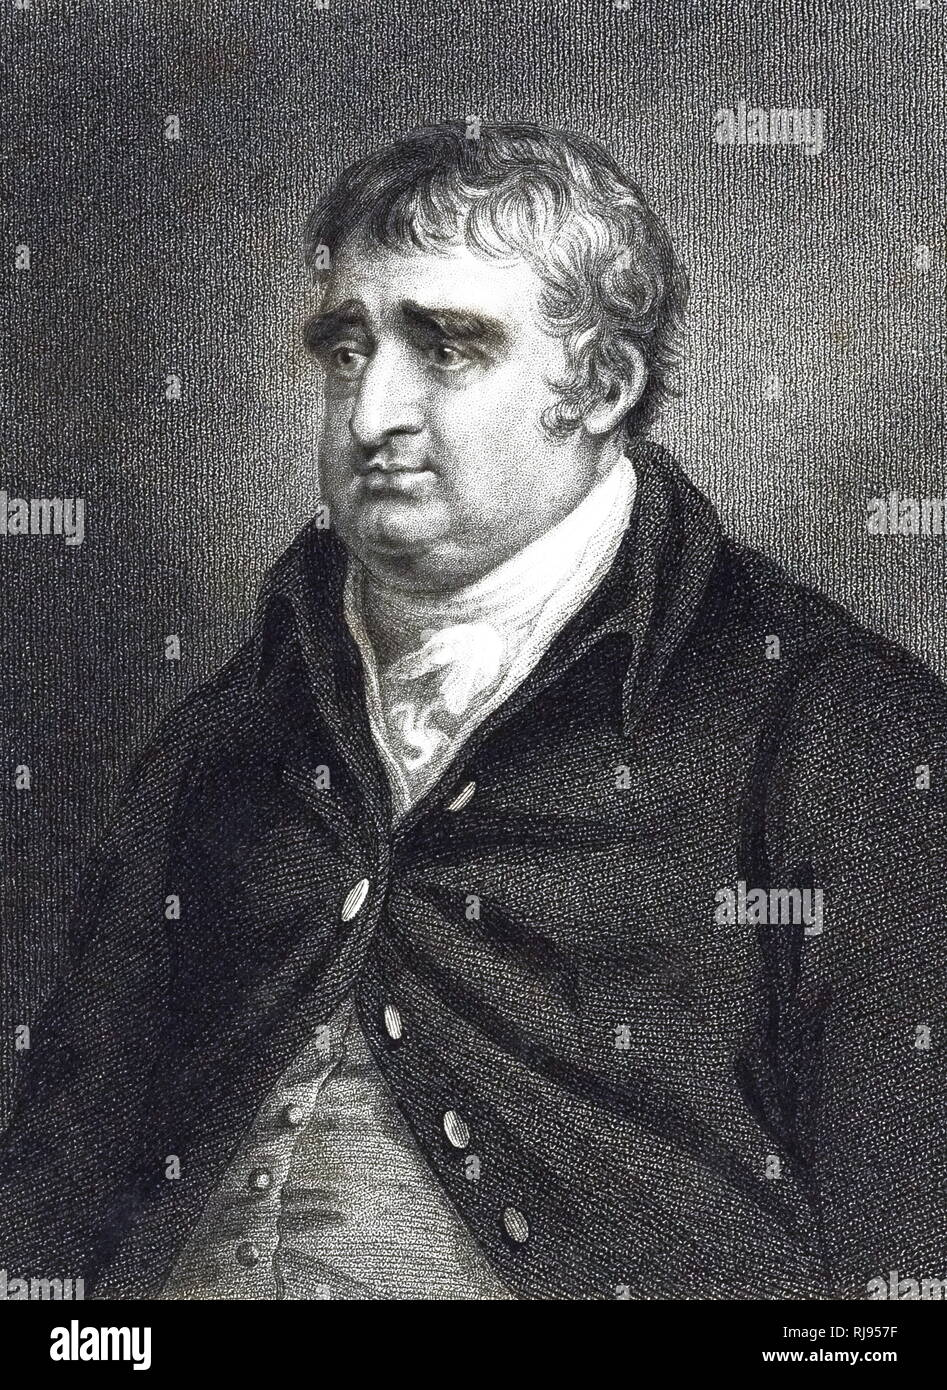 An engraving depicting Charles James Fox (1749-1806) a prominent British Whig statesman. Dated 19th century - Stock Image